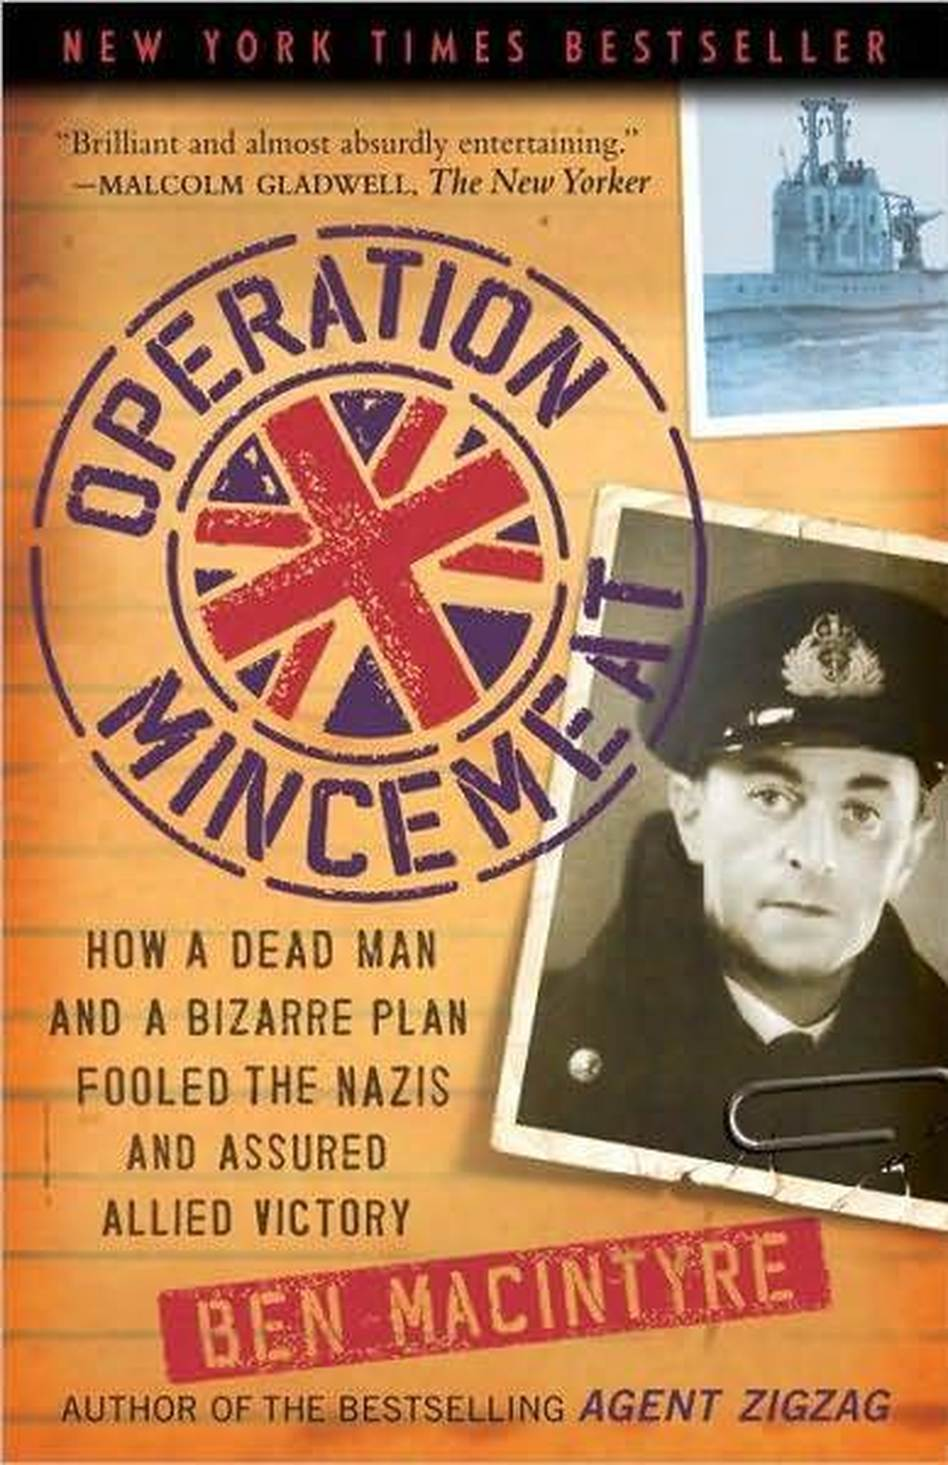 Operation Mincemeat, by Ben Macintyre